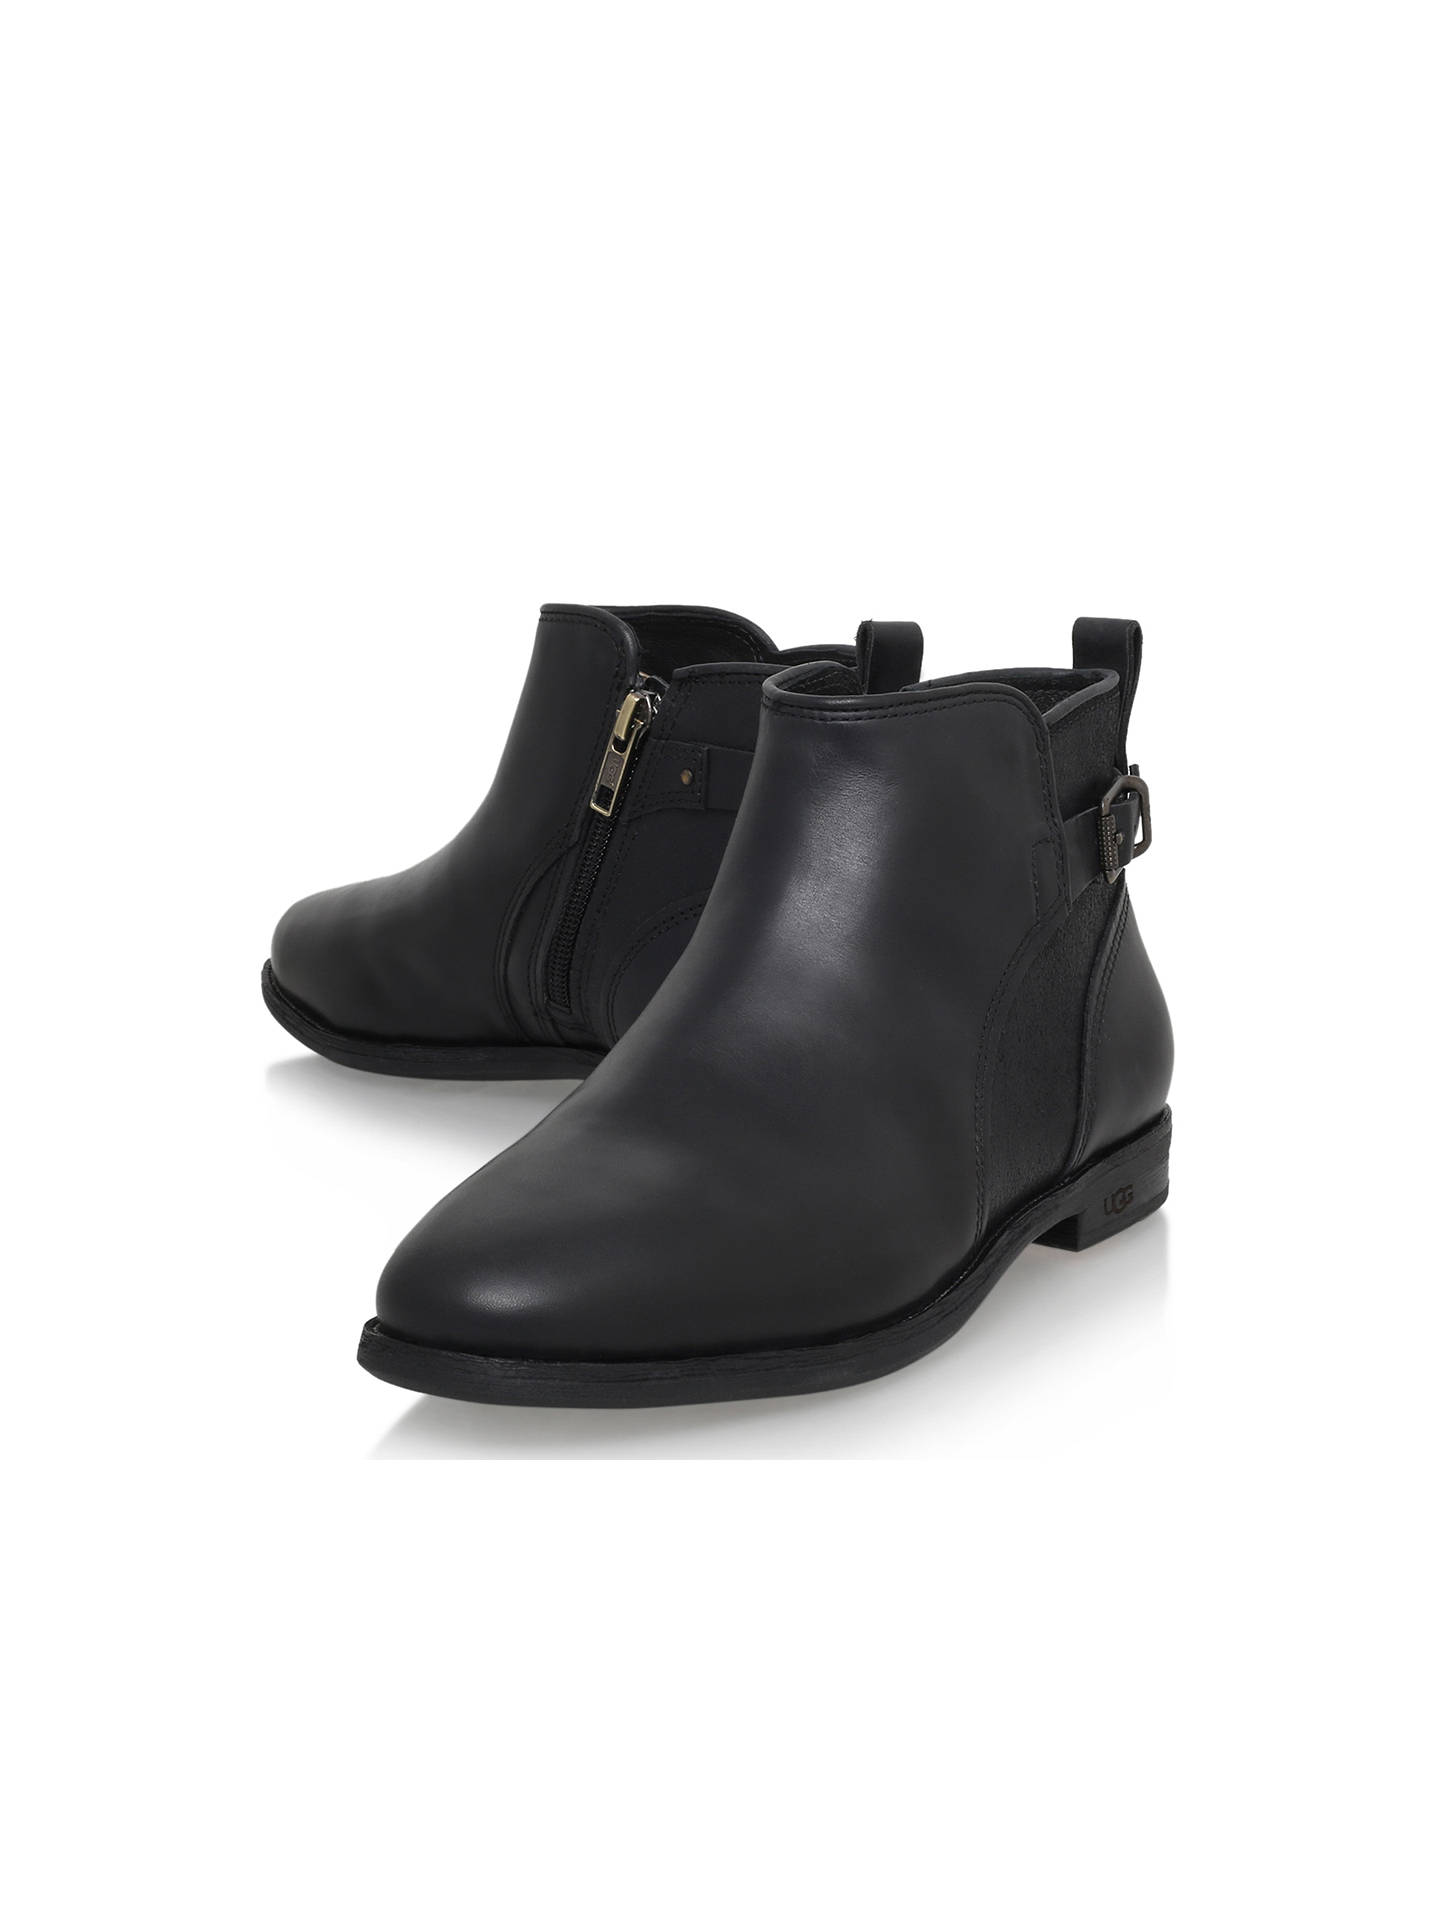 UGG Demi Leather Flat Heeled Chelsea Ankle Boots at John Lewis ... f97611cd0